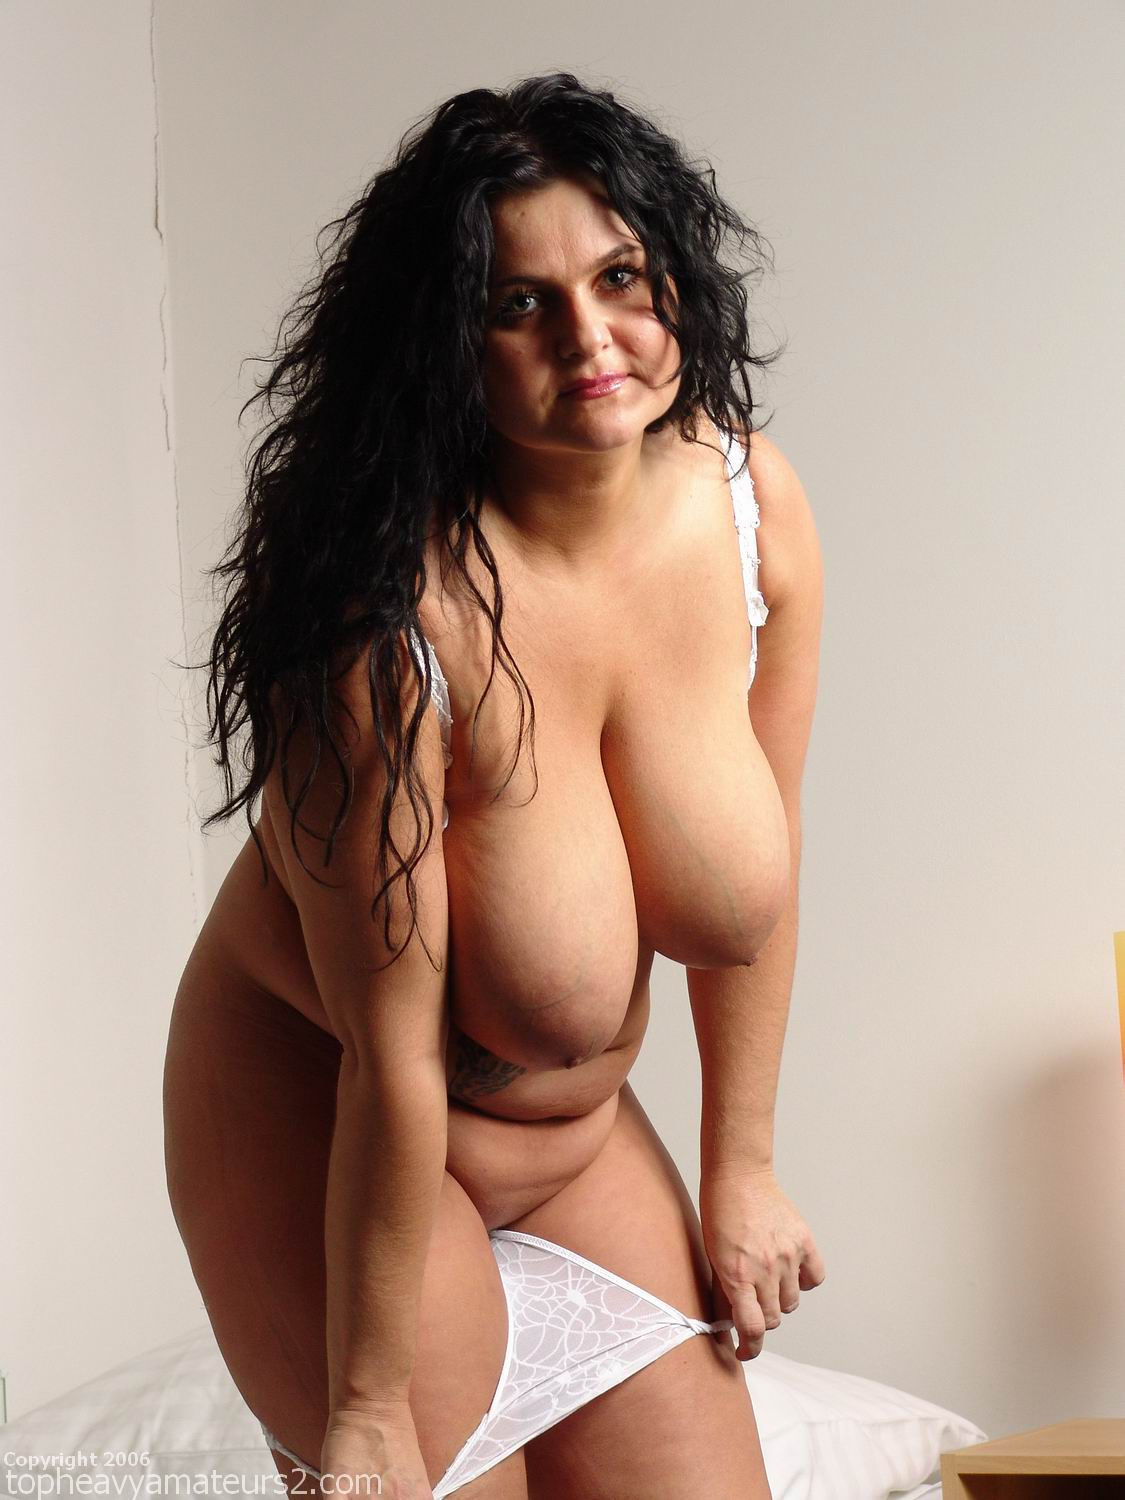 indian womens back nud